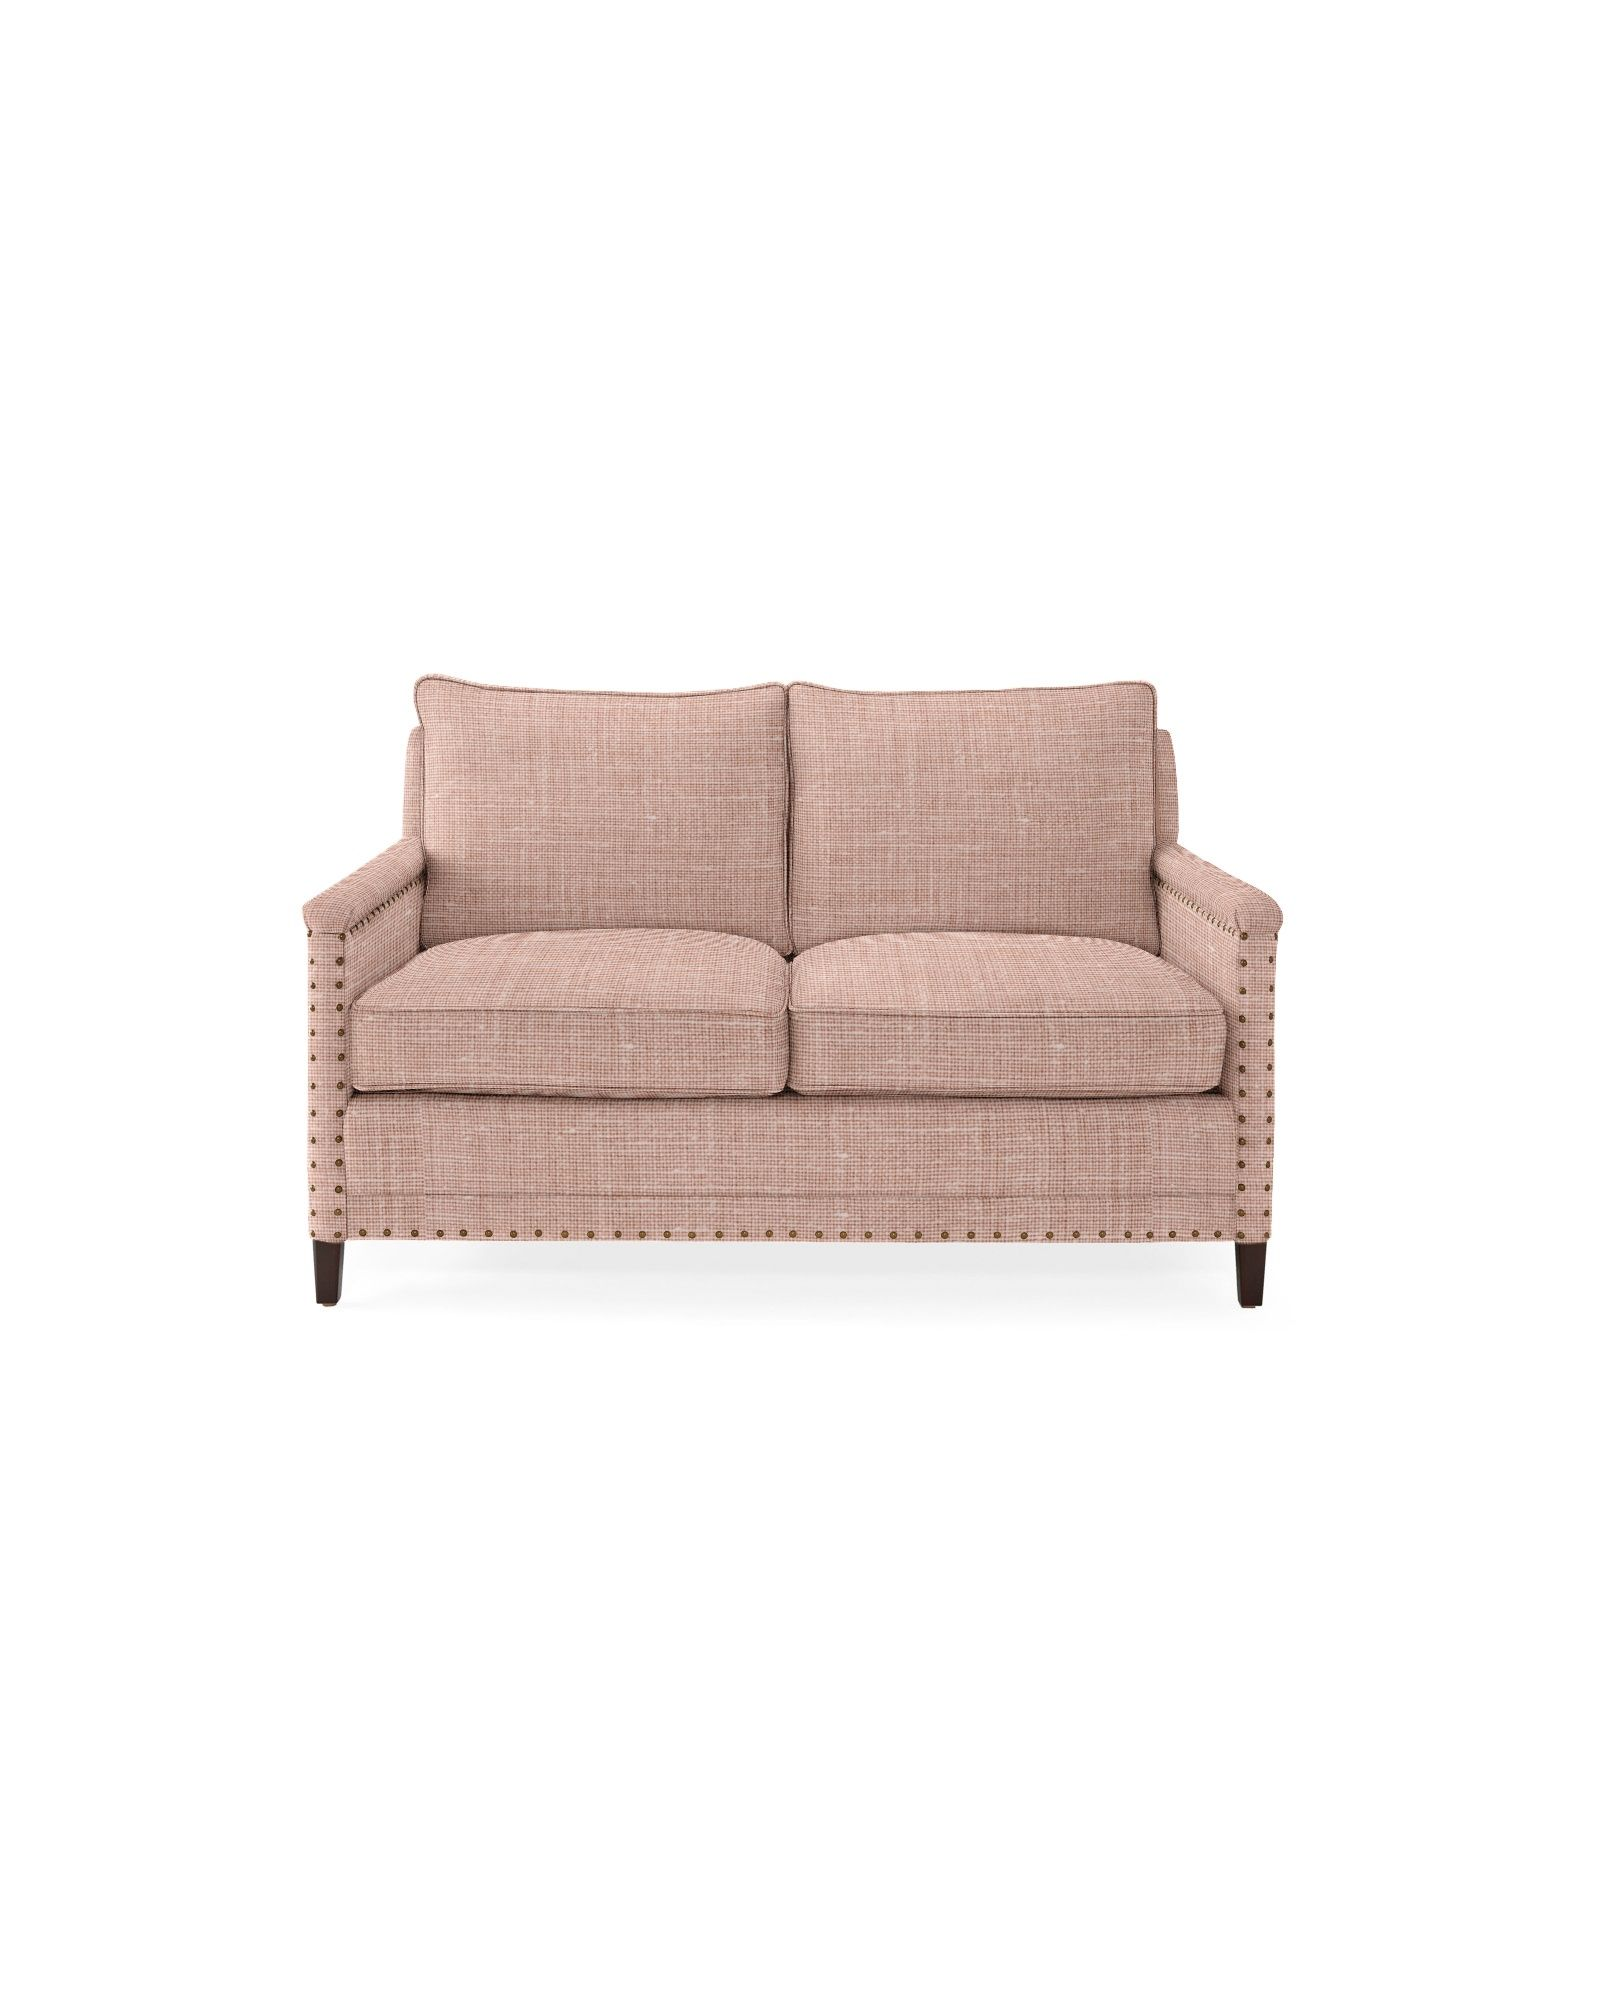 Astounding Spruce Street Loveseat With Nailheads Caraccident5 Cool Chair Designs And Ideas Caraccident5Info